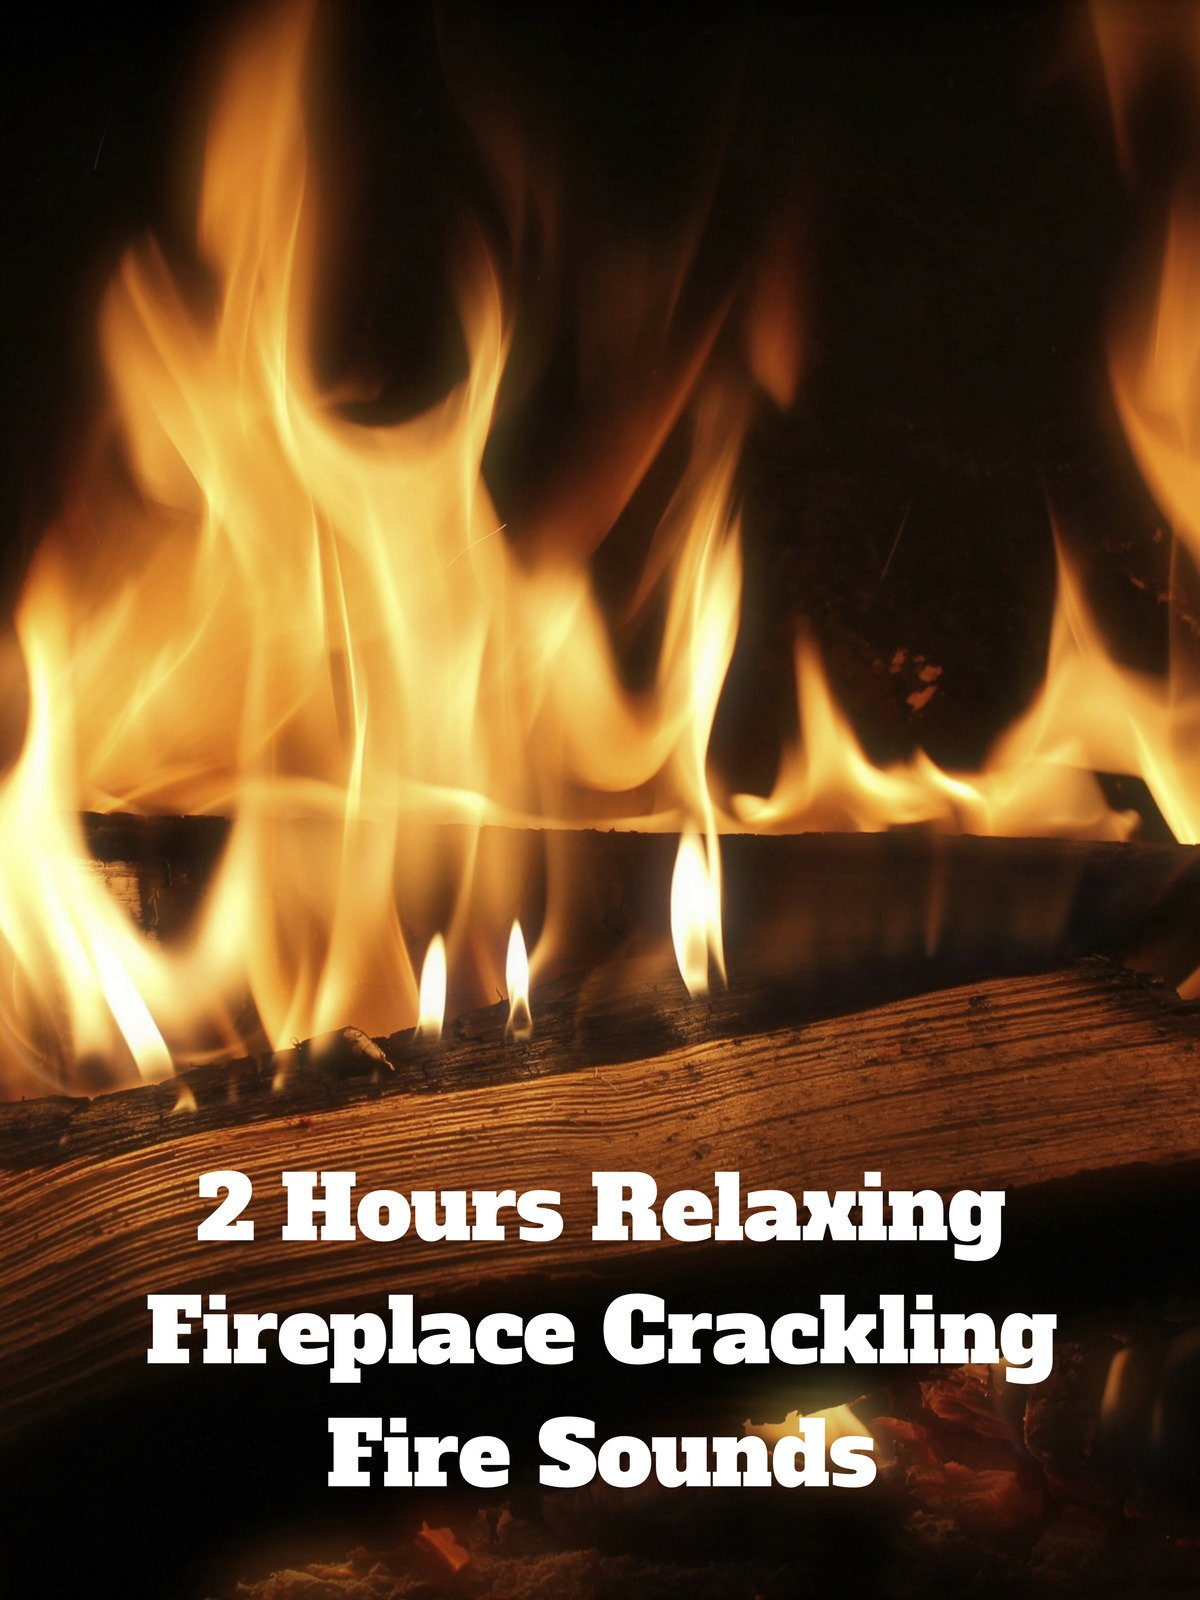 Watch 2 Hours Relaxing Fireplace Crackling Fire Sounds On Amazon